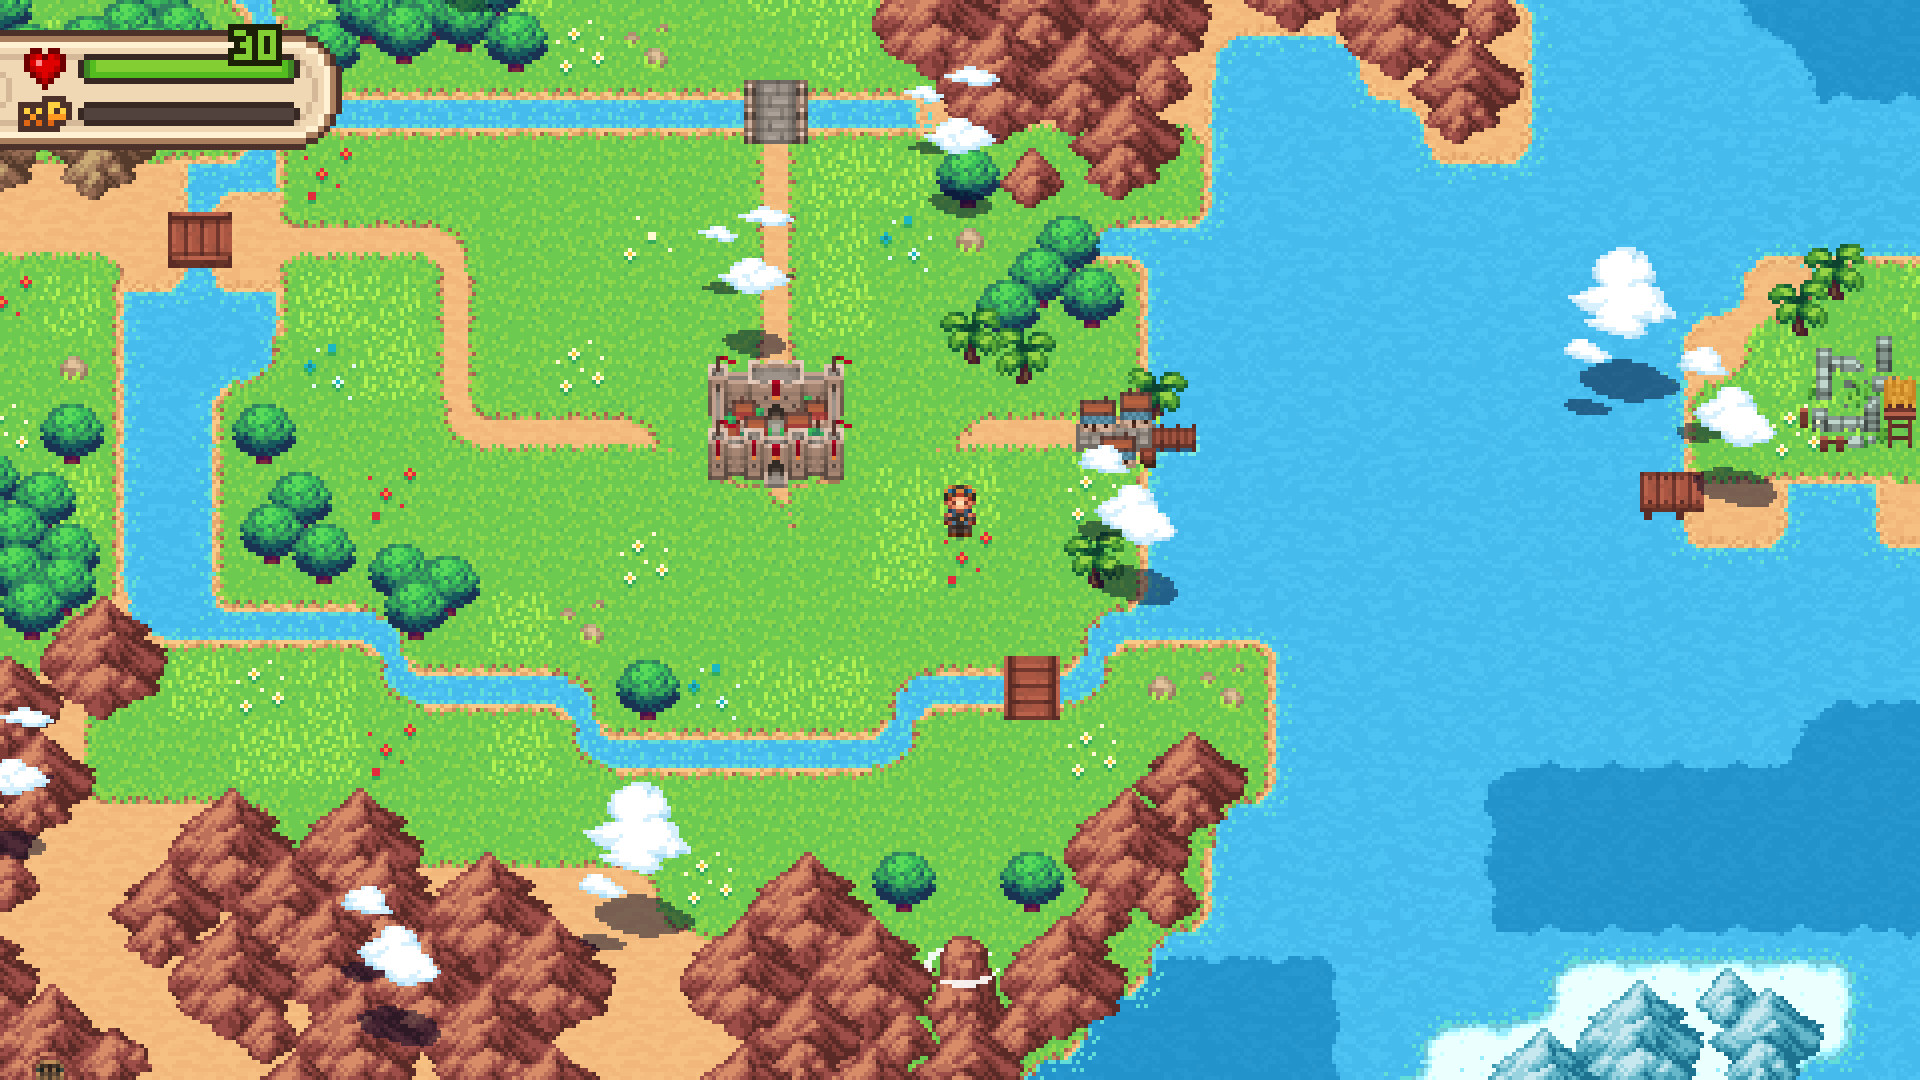 Evoland 2 (Steam Key)